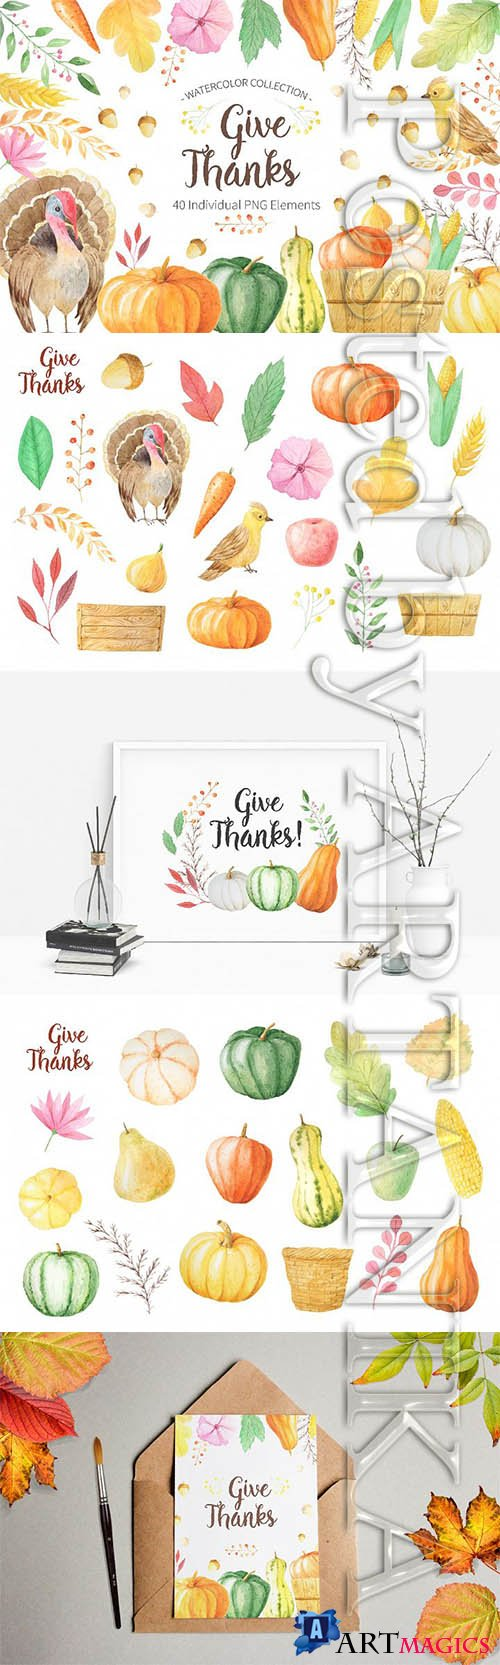 Watercolor Thanks Giving PNG